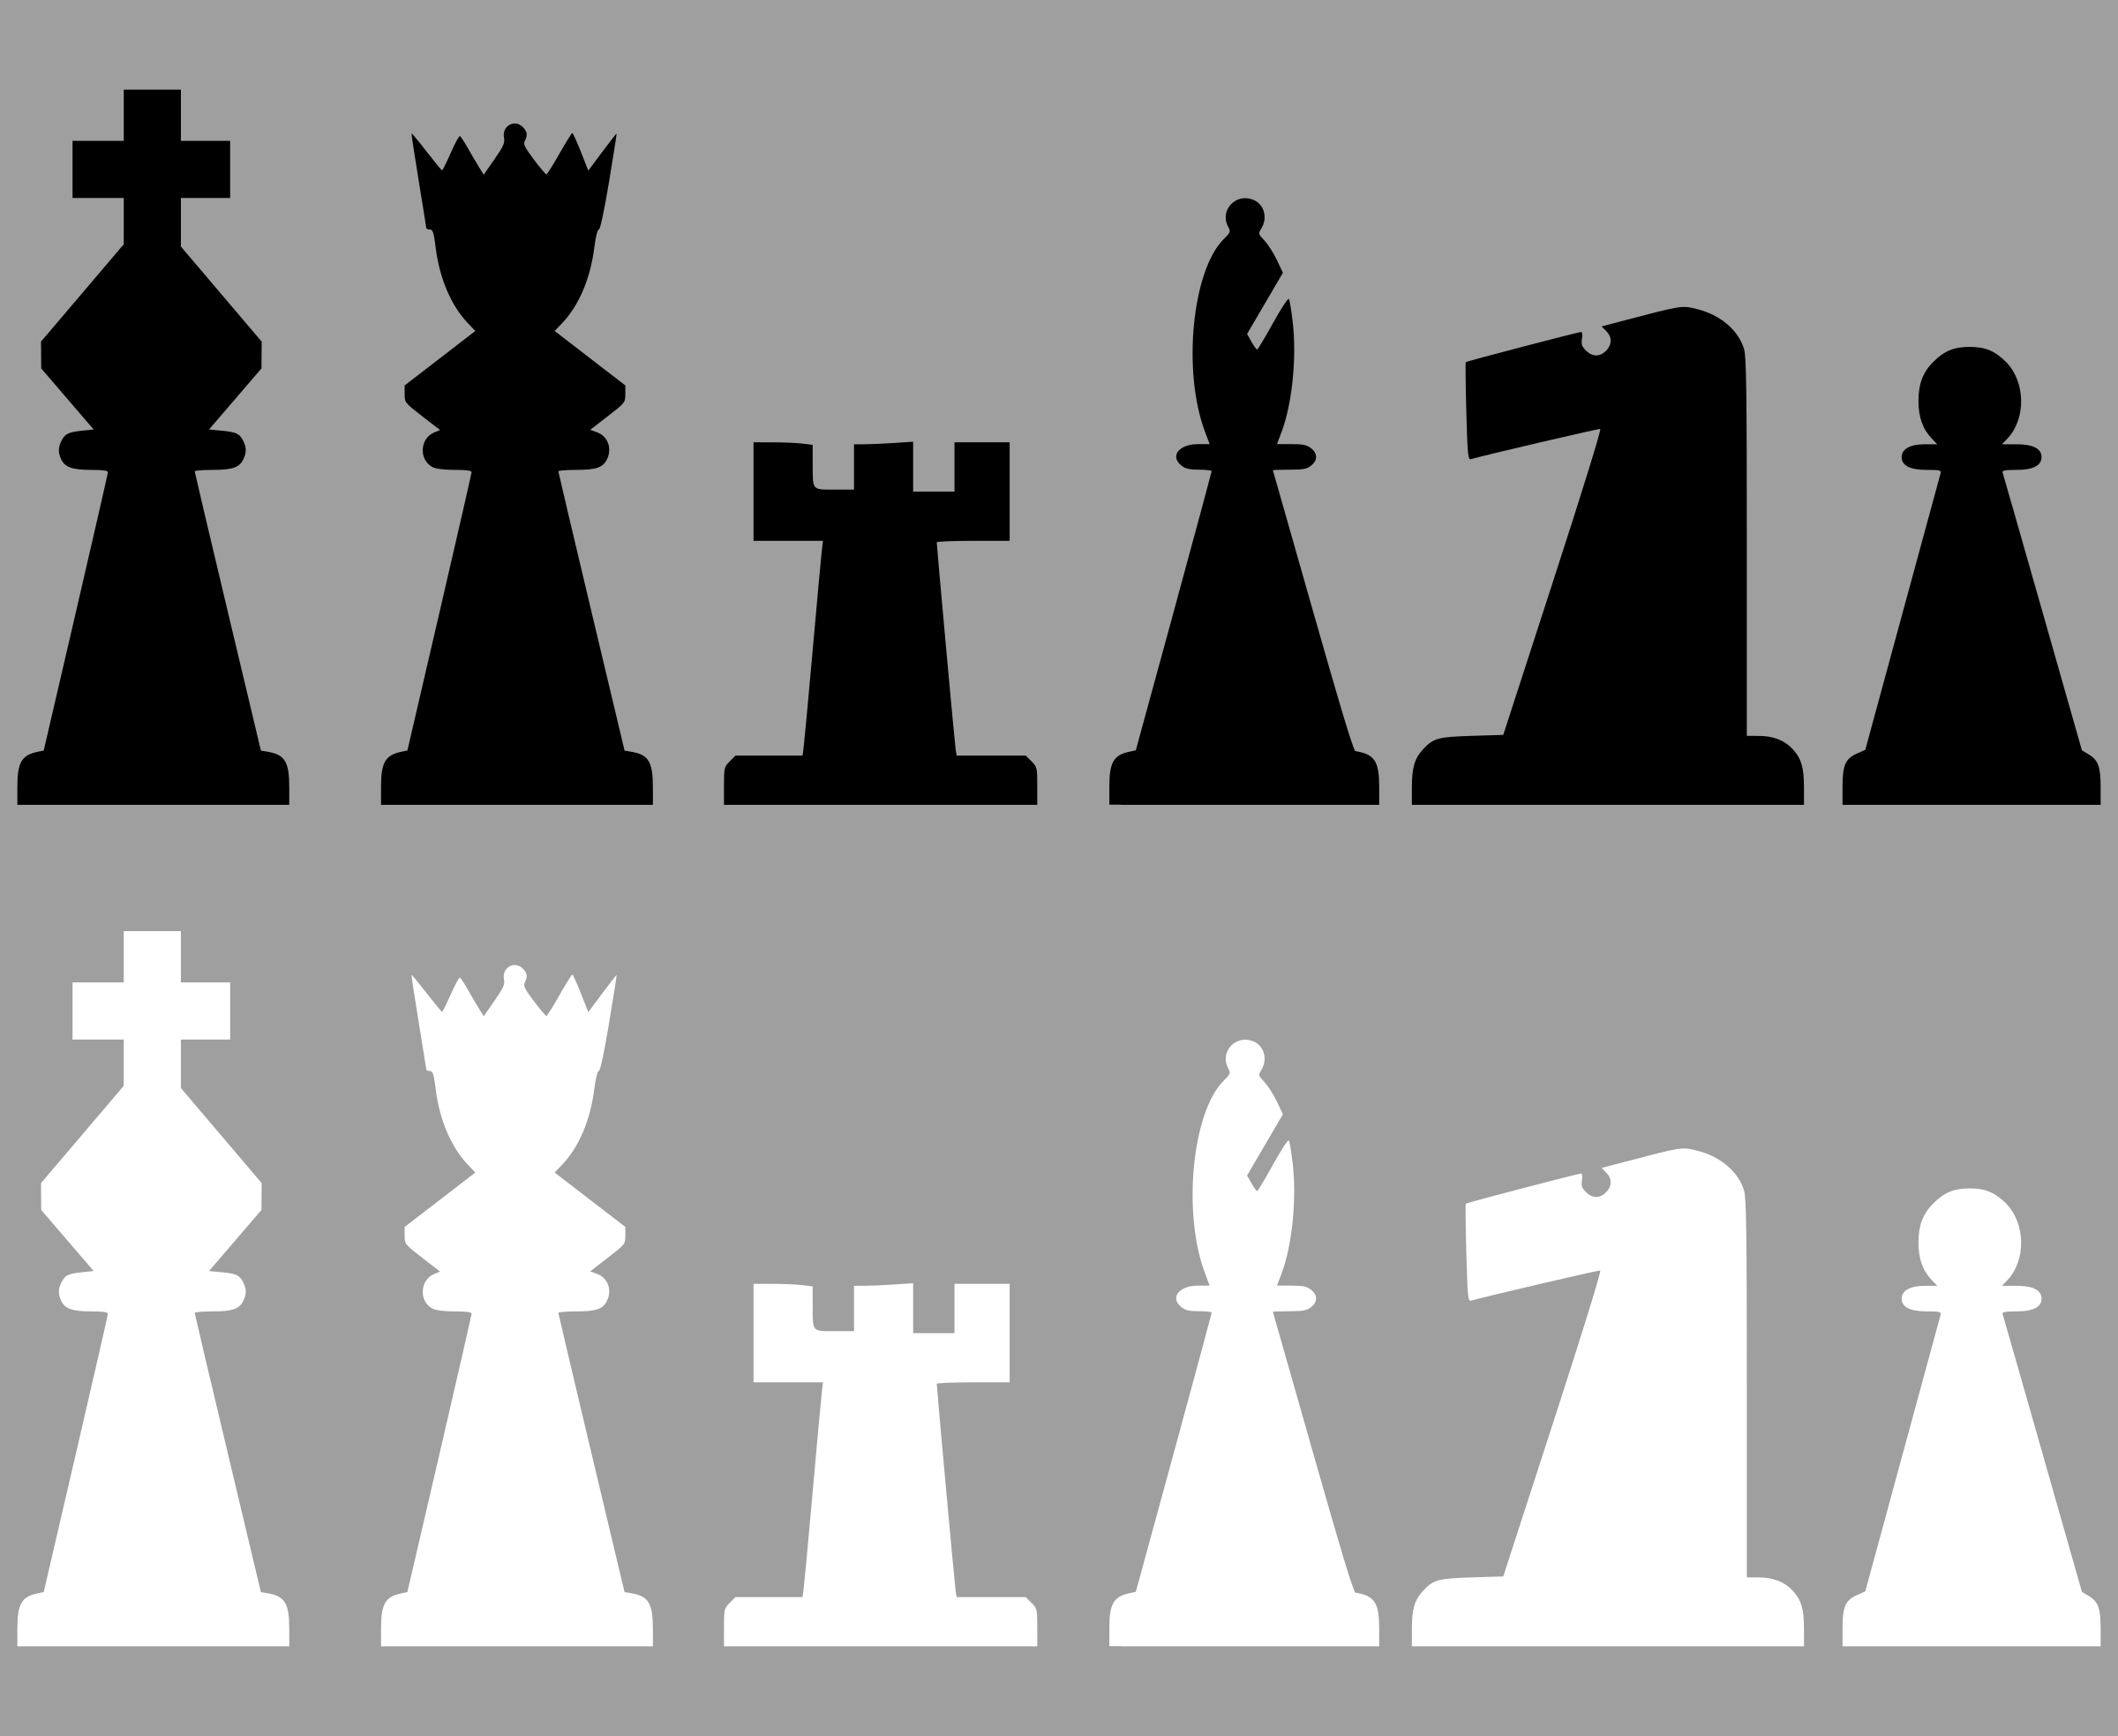 2D Chess set - Pieces 2 by portablejim